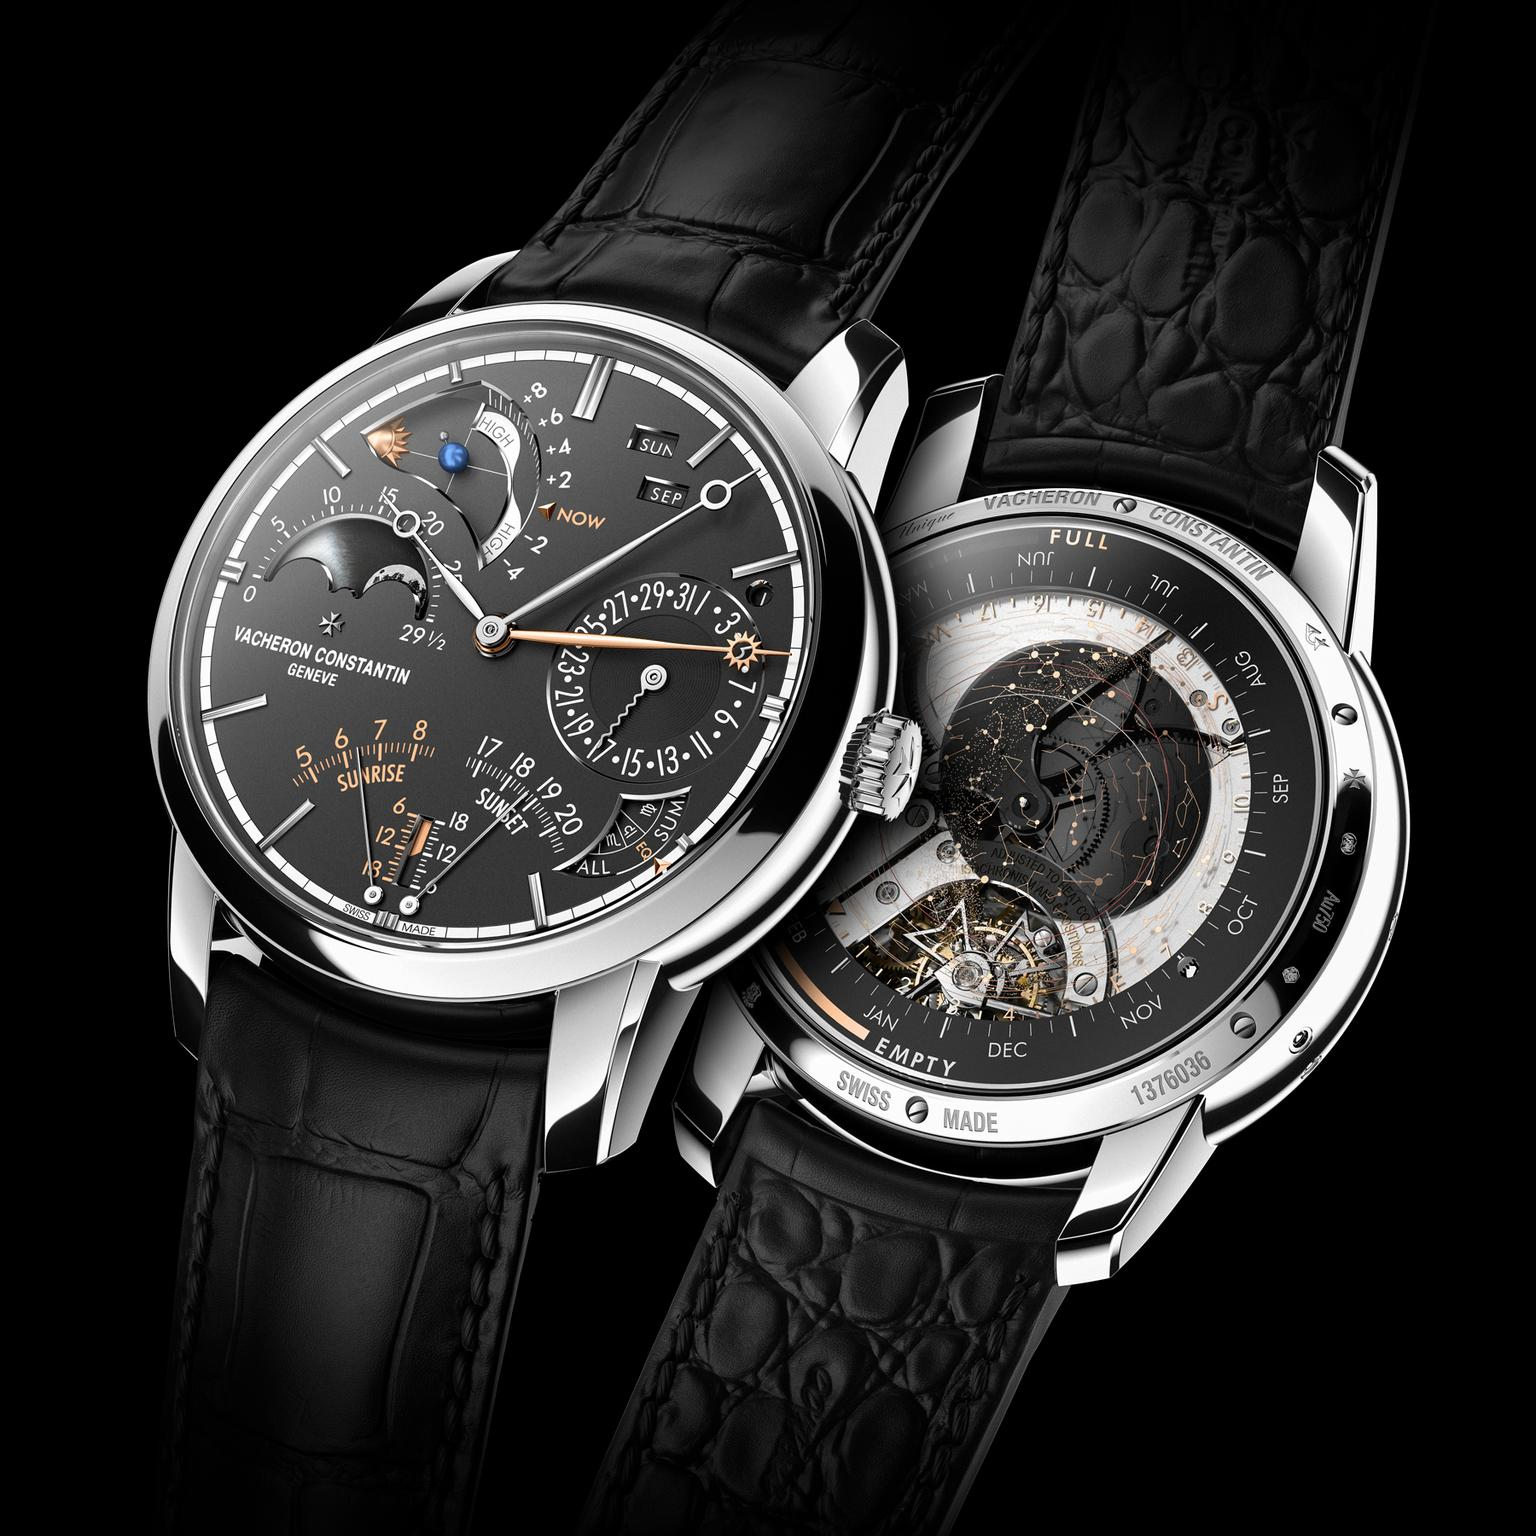 Vacheron Constantin Celestia watch complications